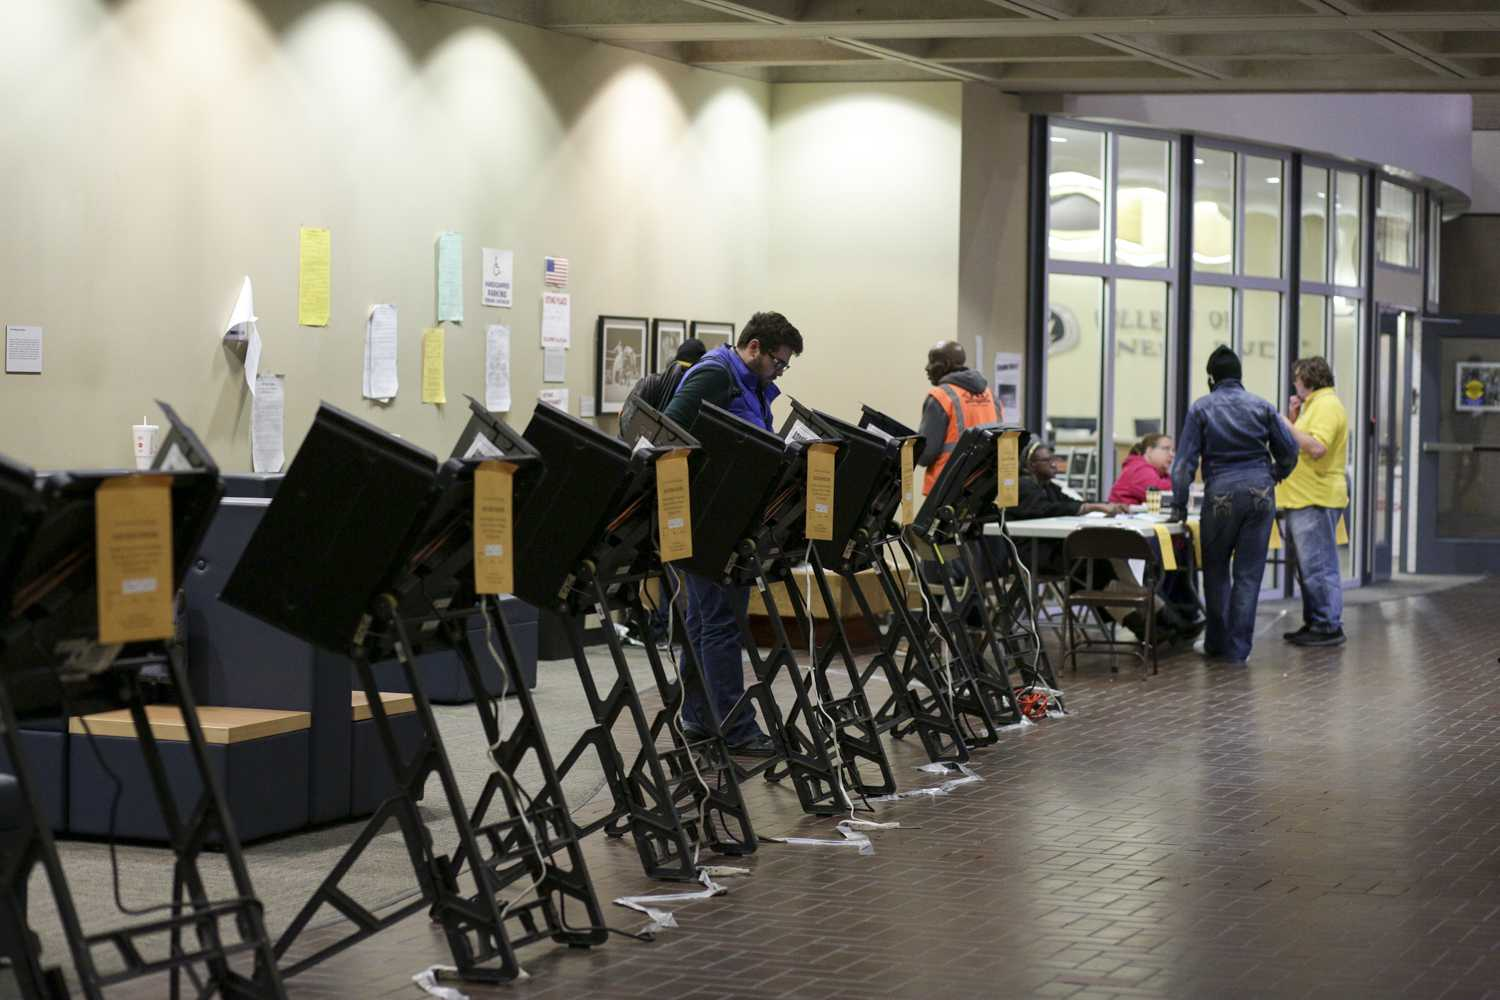 Students and community members voted in Posvar Hall Tuesday. About 80 people cast their vote at the polling station. (Photo by Thomas Yang | Senior Staff Photographer)